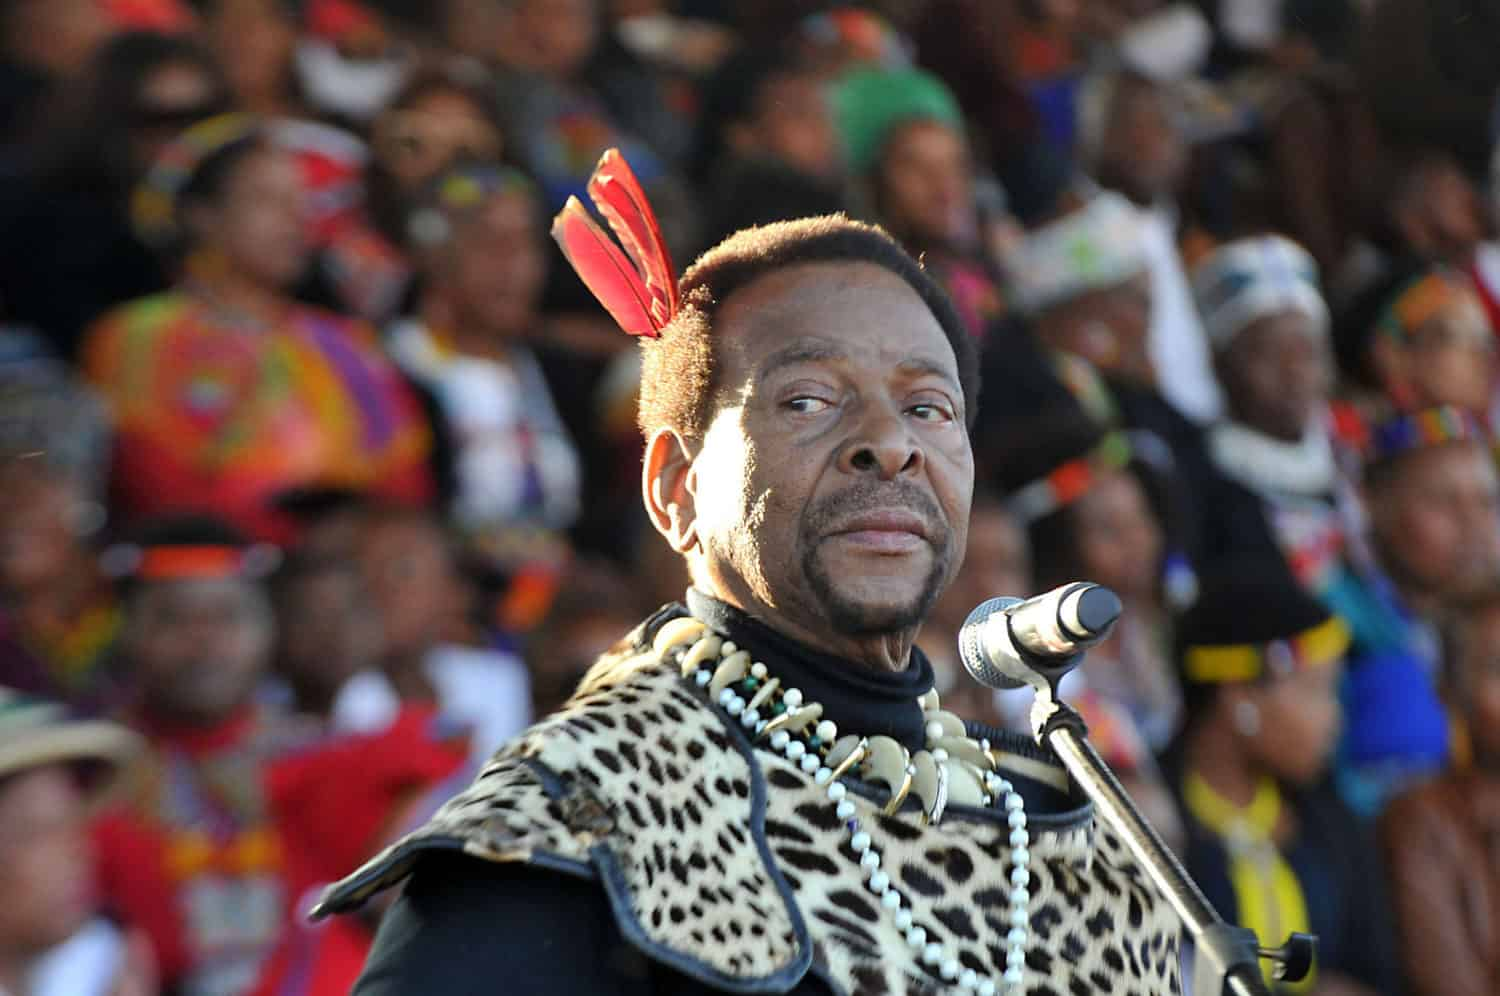 King Zwelithini: The memory of King Goodwill Zwelithini KaBhekuzulu will be ingrained on the heart of farmers forever, says Mzansi's agricultural sector. He was a farmer in his own right and dedicated to rural development. Zwelithini has ruled over the Zulu nation since his coronation on 3 December 1971. Photo: Gallo Images/Daily Sun/Jabulani Langa